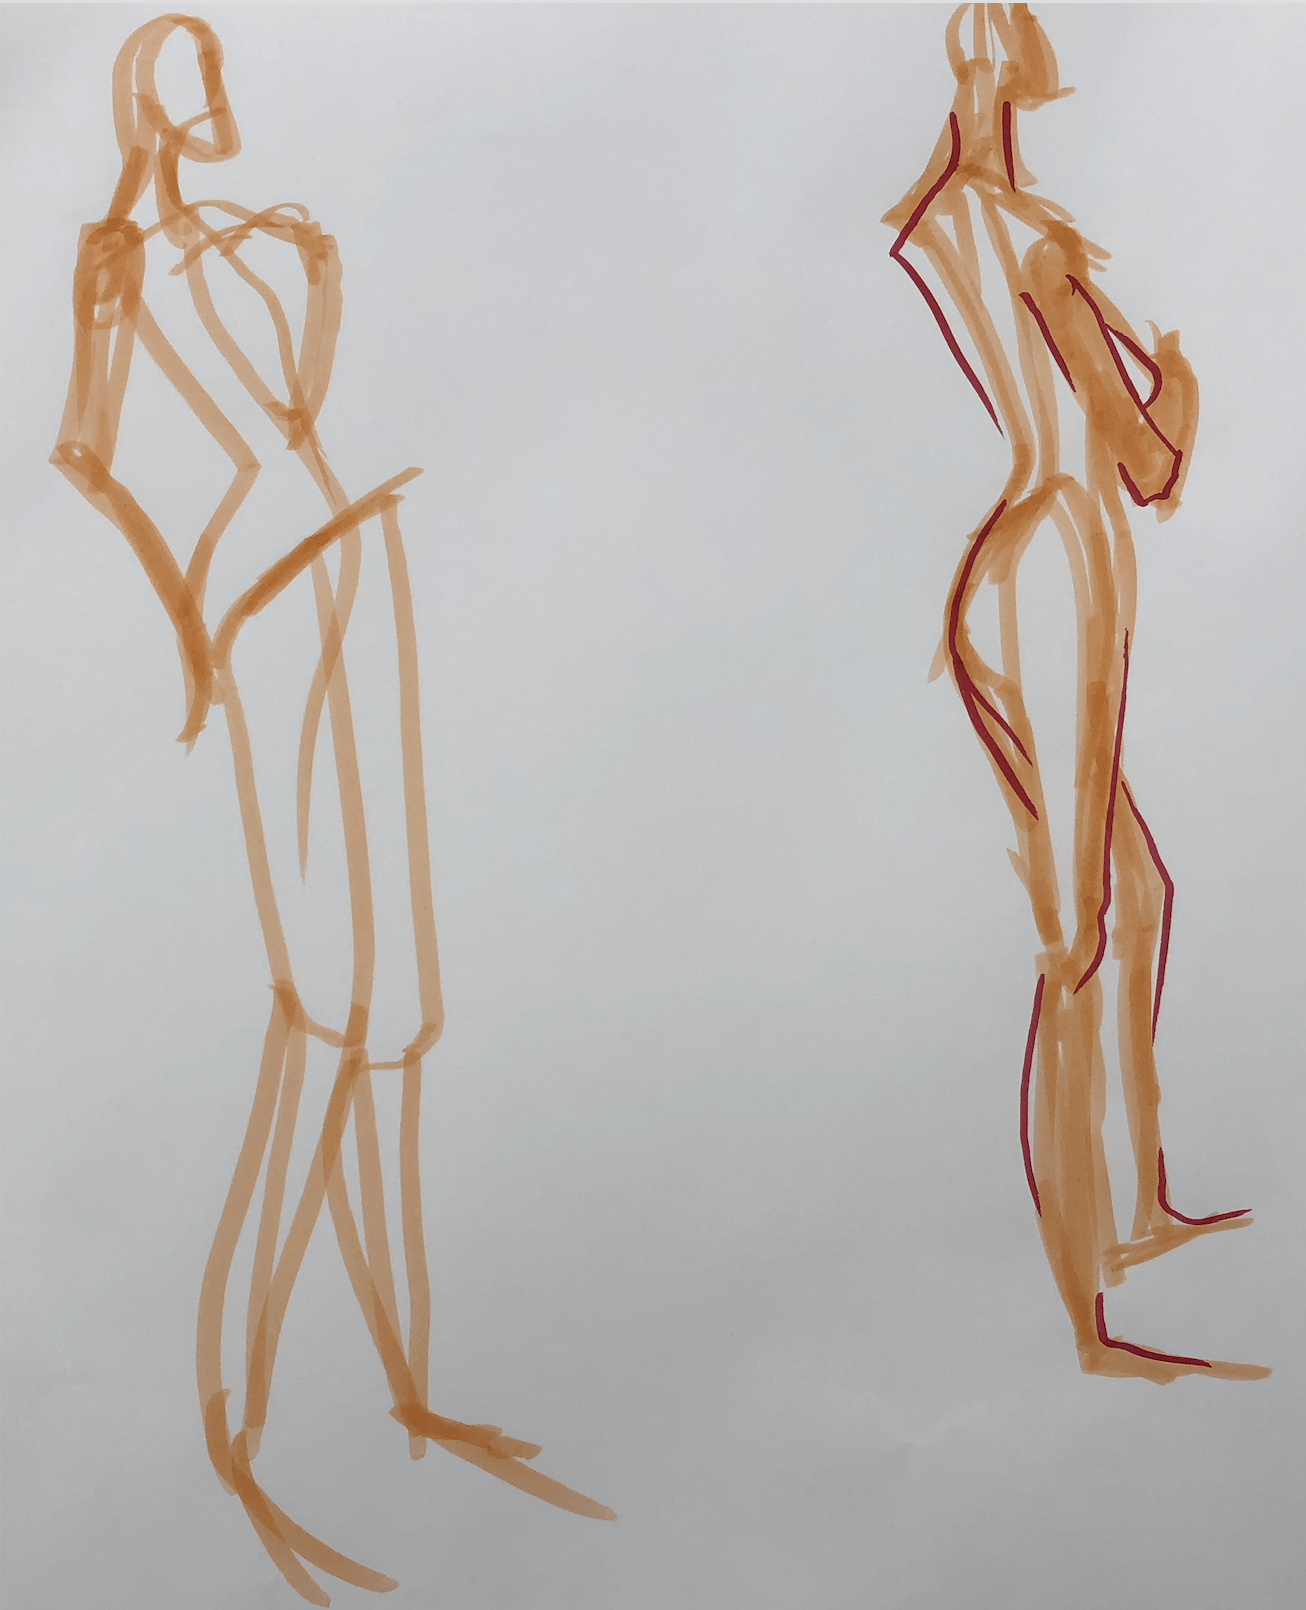 Live Model Sketches